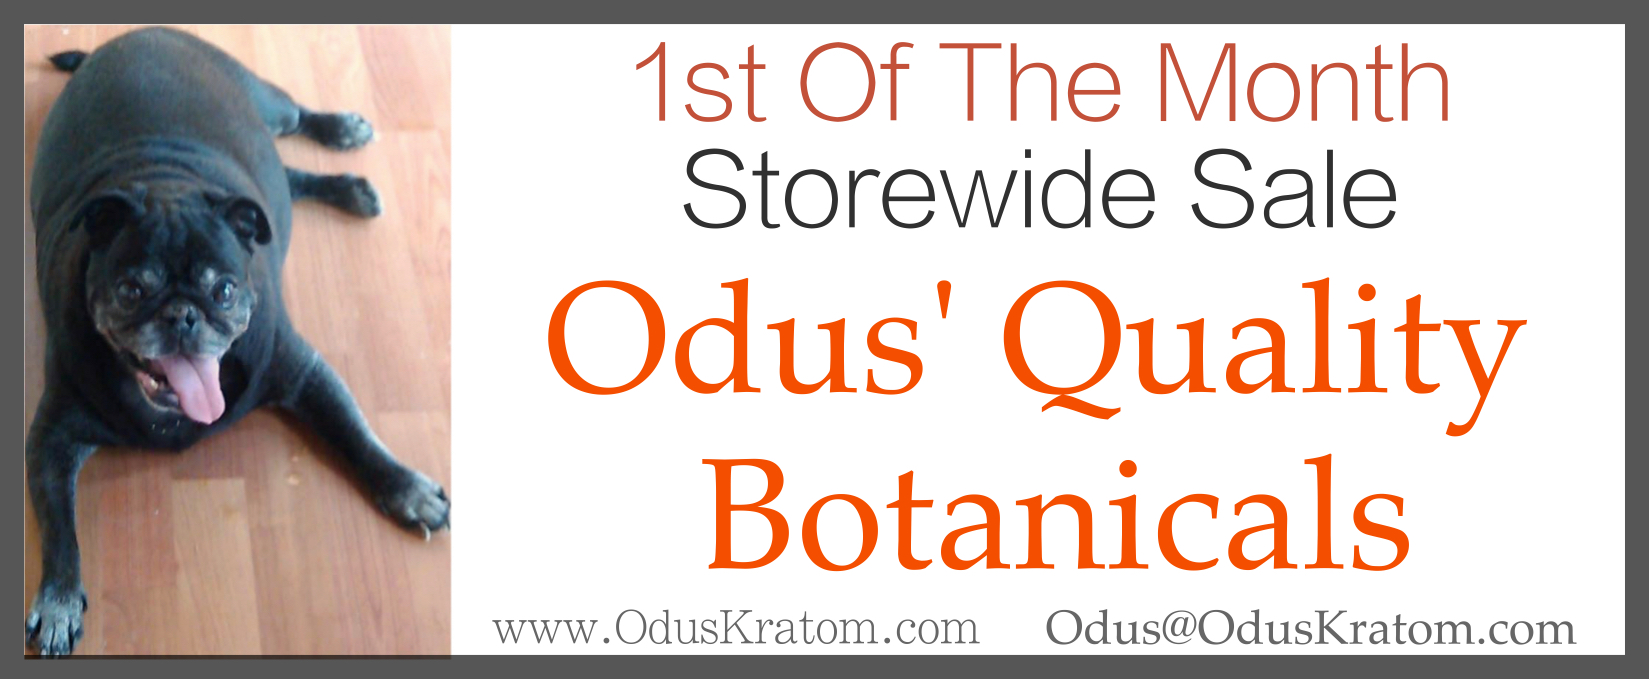 1st of the month sale at Odus' Quality Botanicals